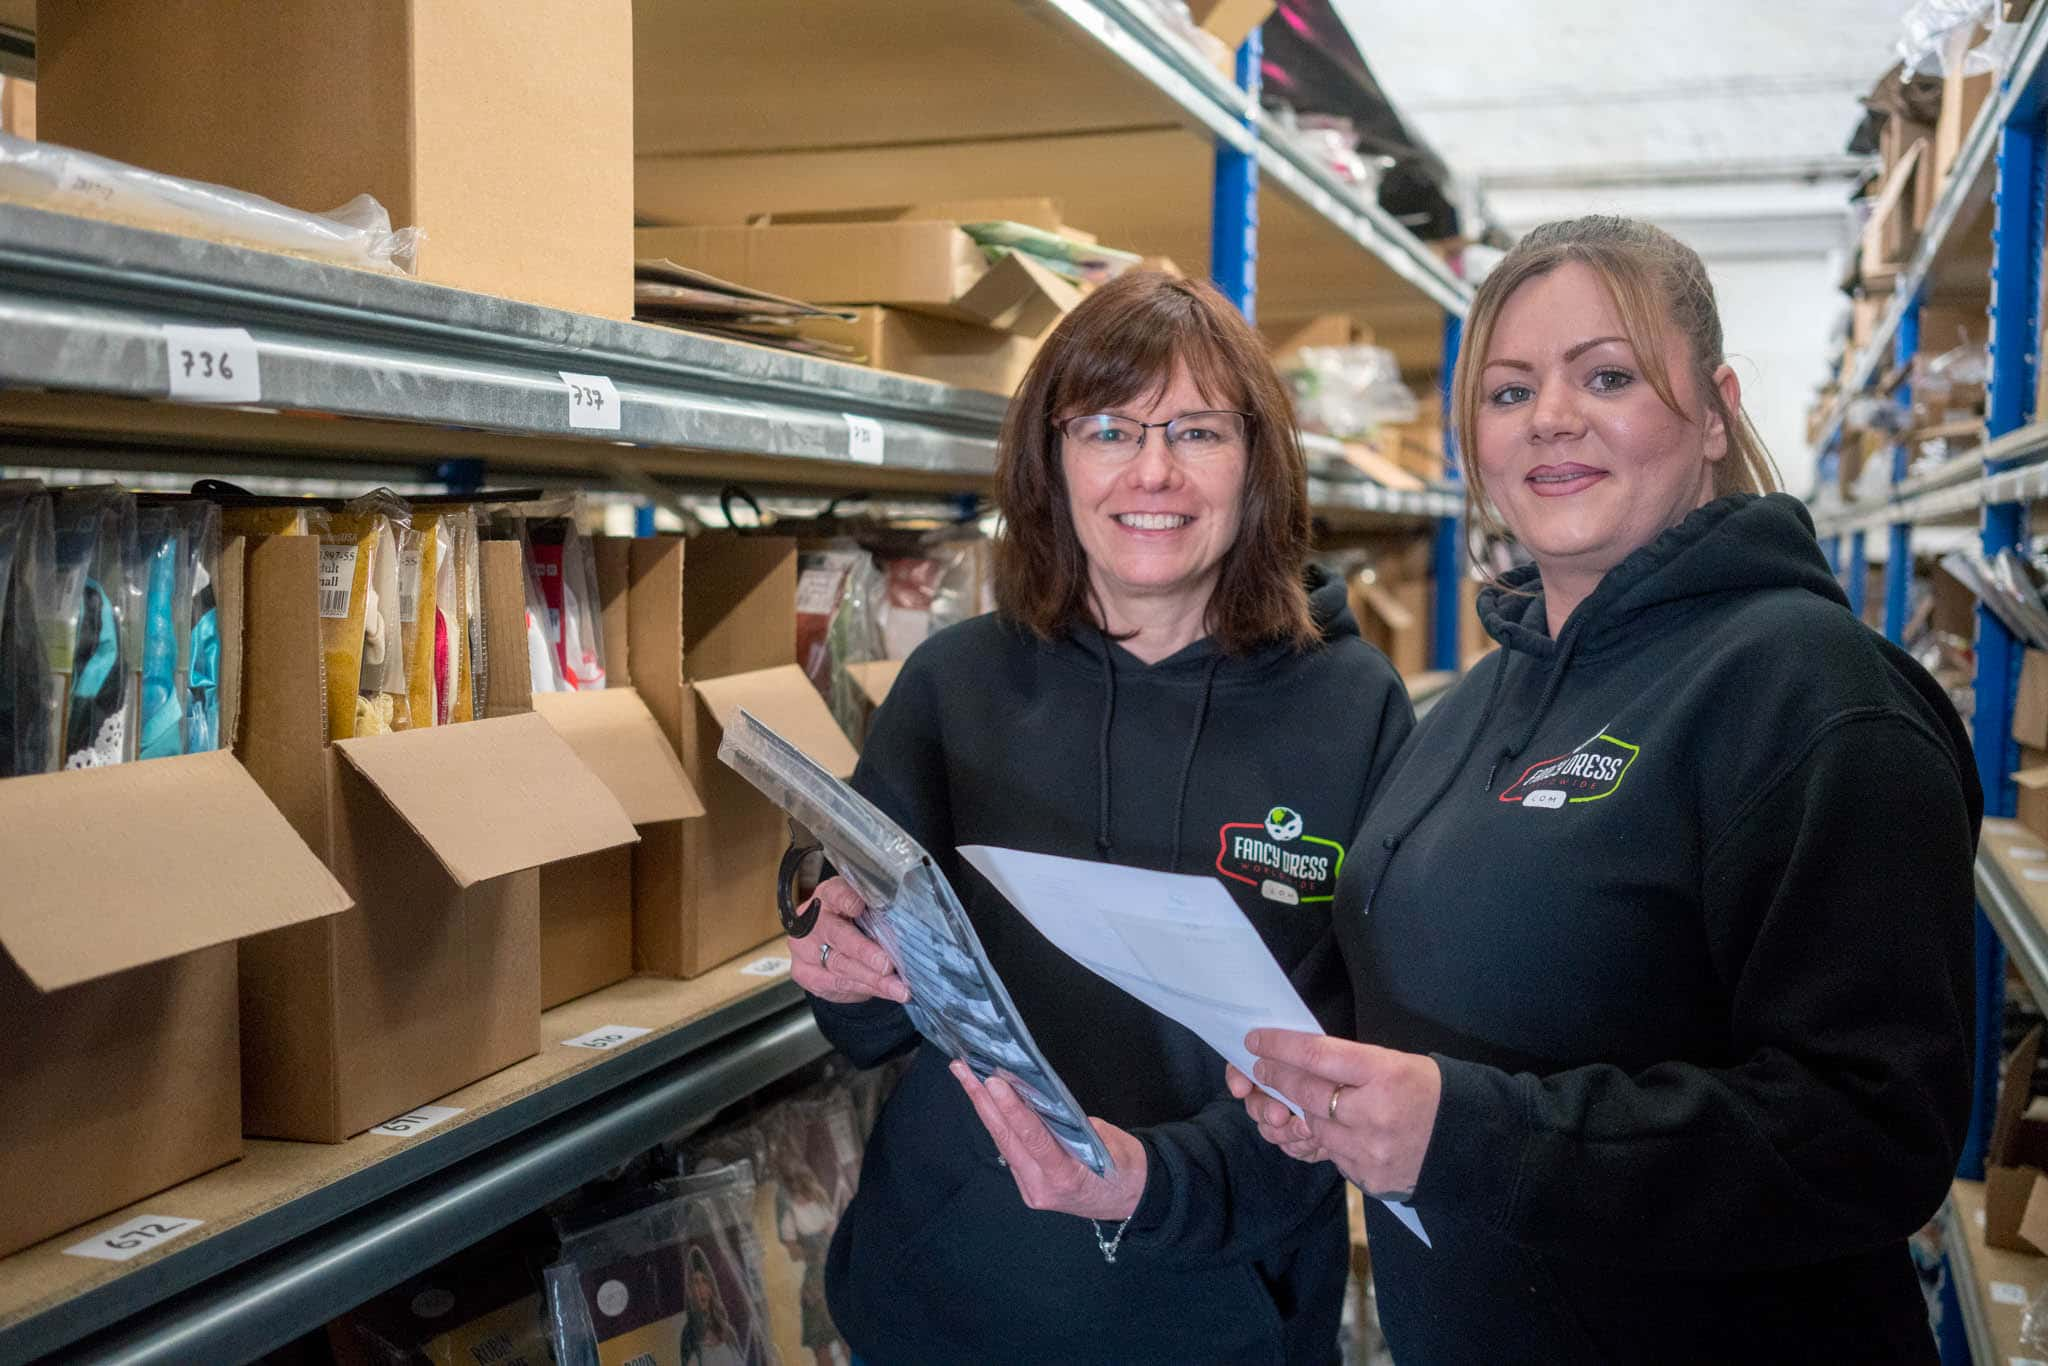 coronavirus financial support two women in a warehouse smiling at the camera